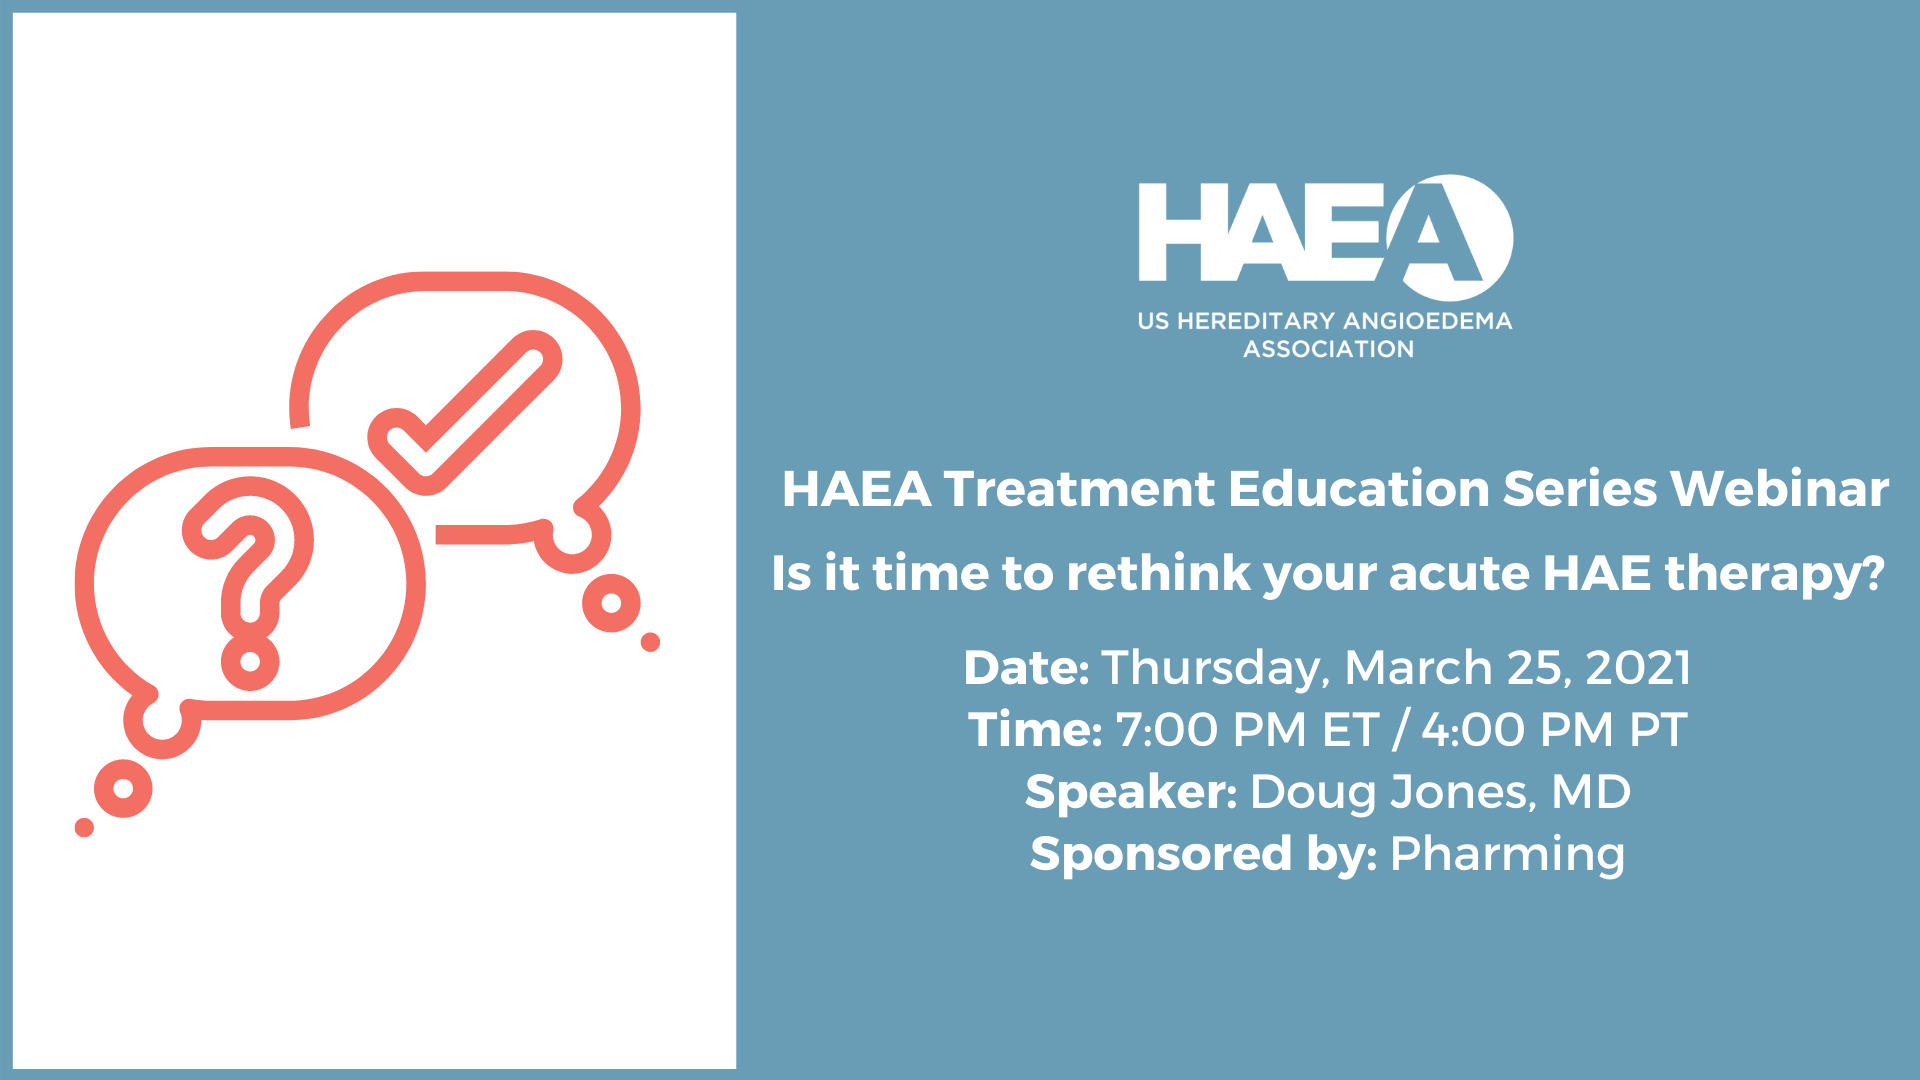 HAEA Treatment Education Series Webinar: Is it Time to Rethink your Acute HAE Therapy?